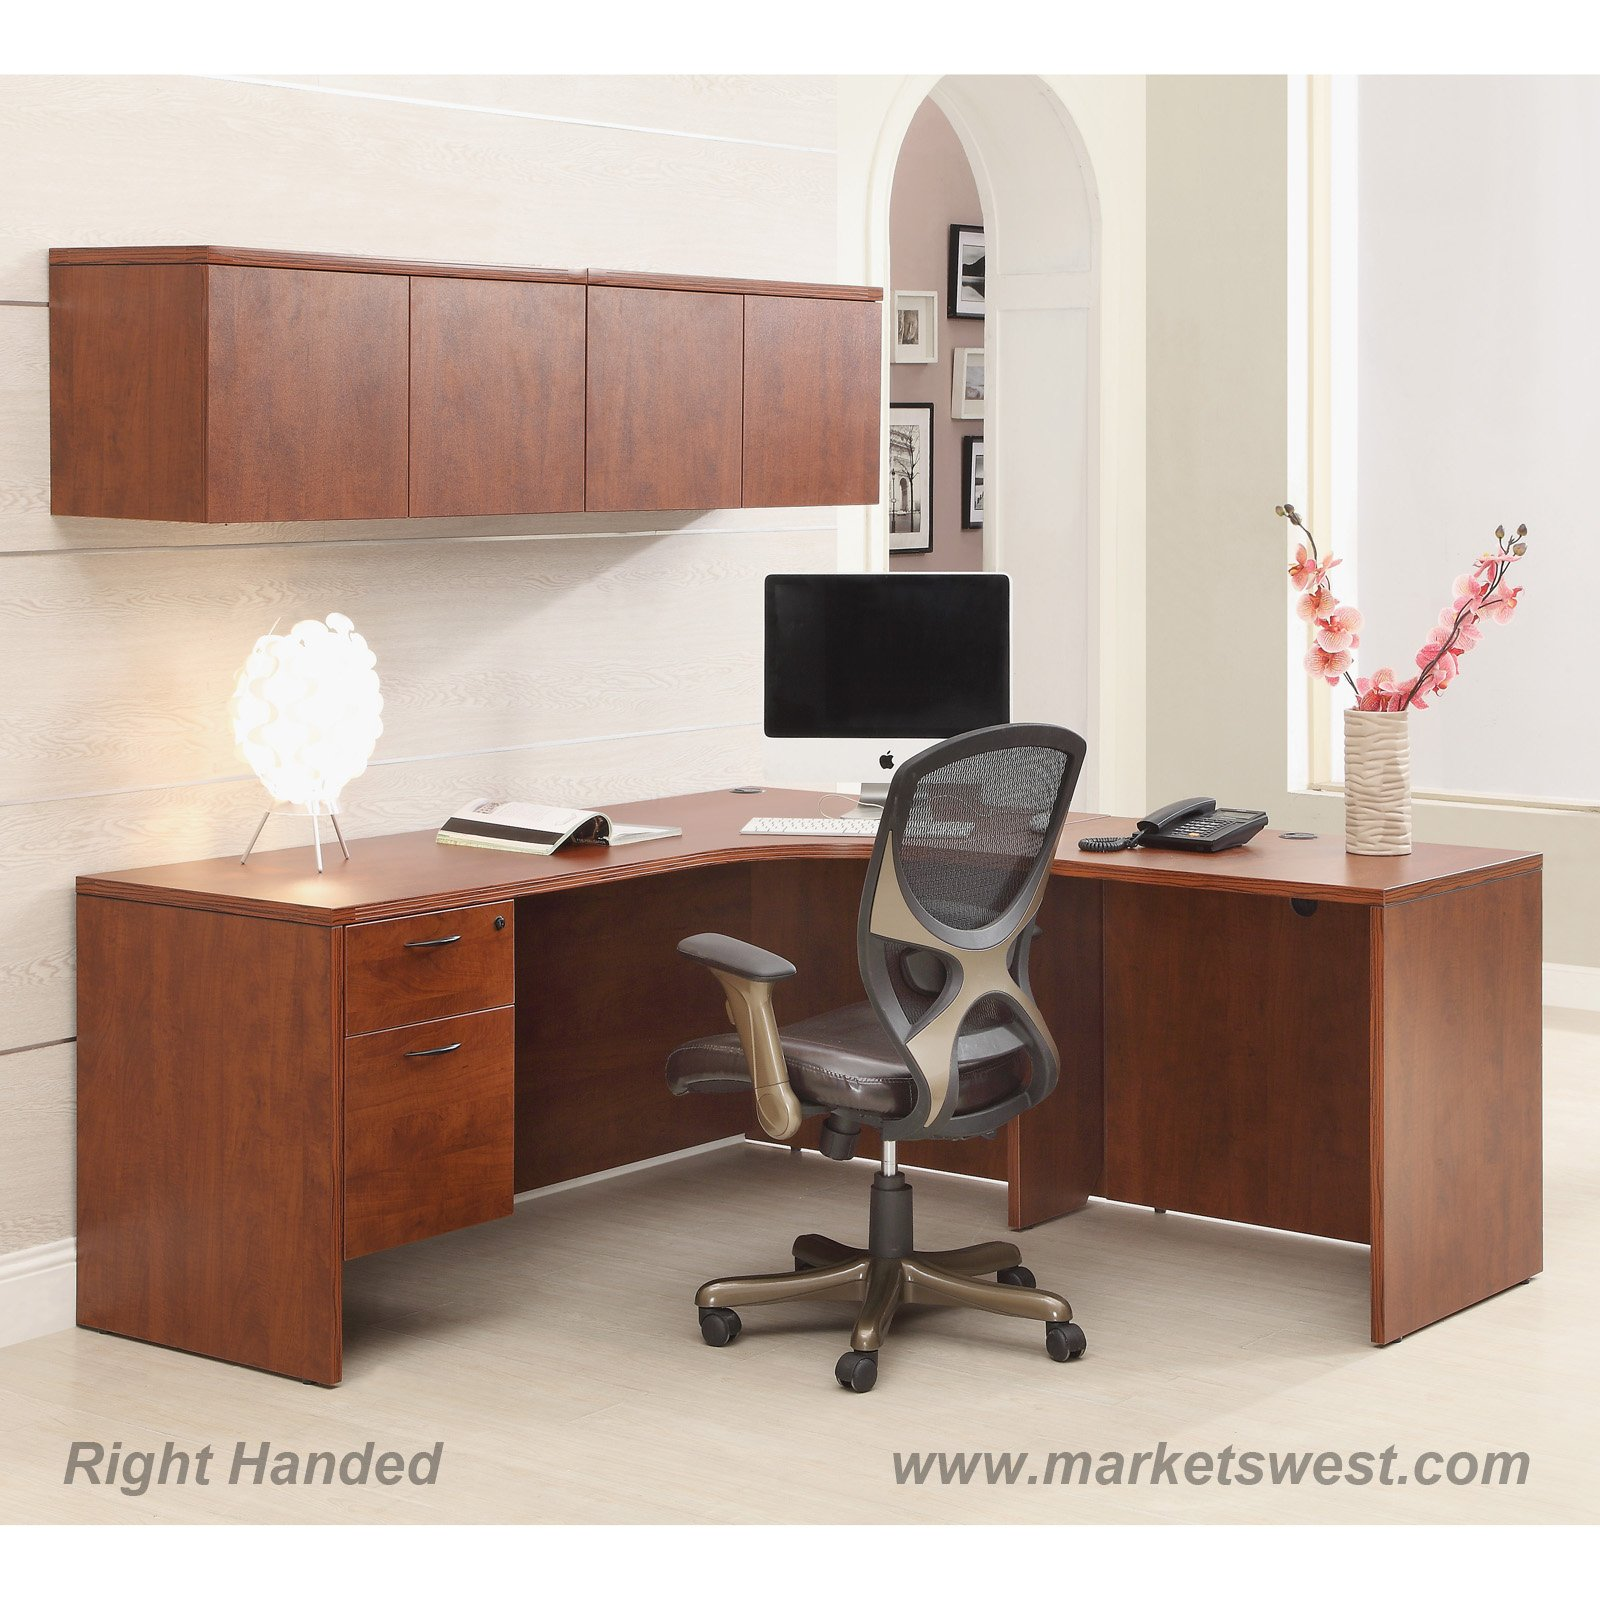 L-Shape Desk 72 x72  with Computer Corner u0026 Wall Mount Cabinets Cherry or Mahogany & L-Shape Desk 72